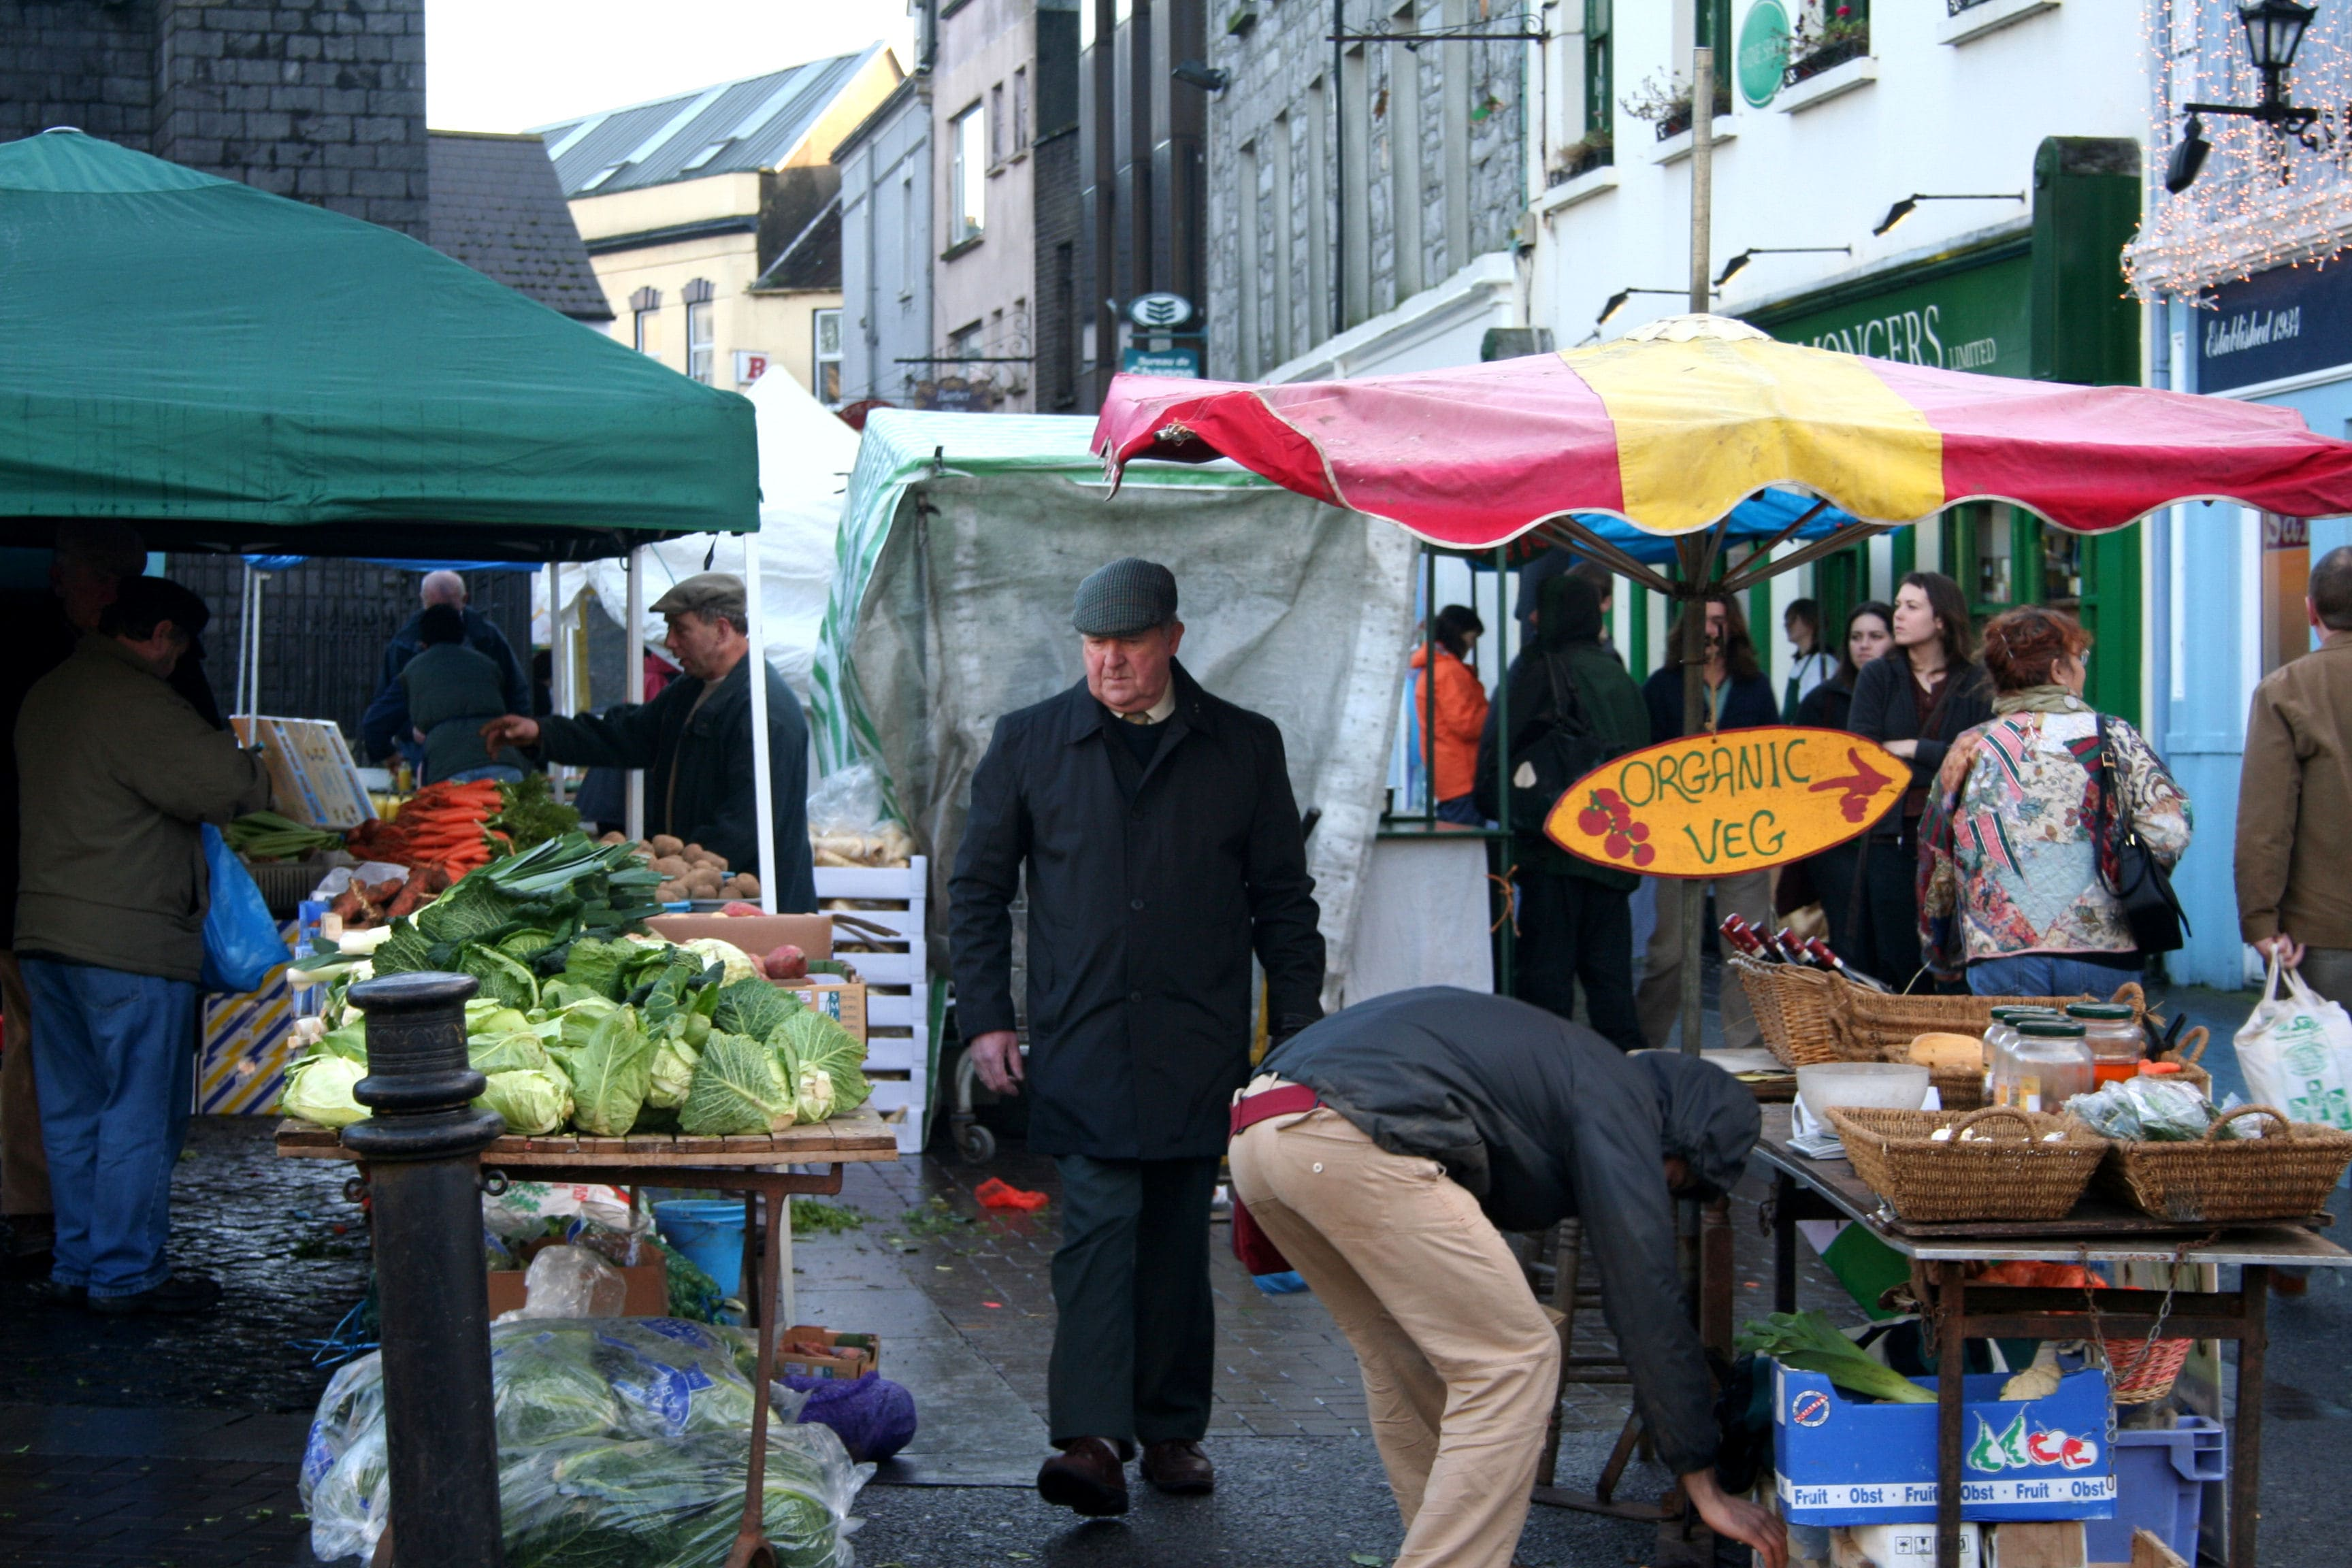 Shopping at the Galway Market is a cool thing to do in Galway Ireland